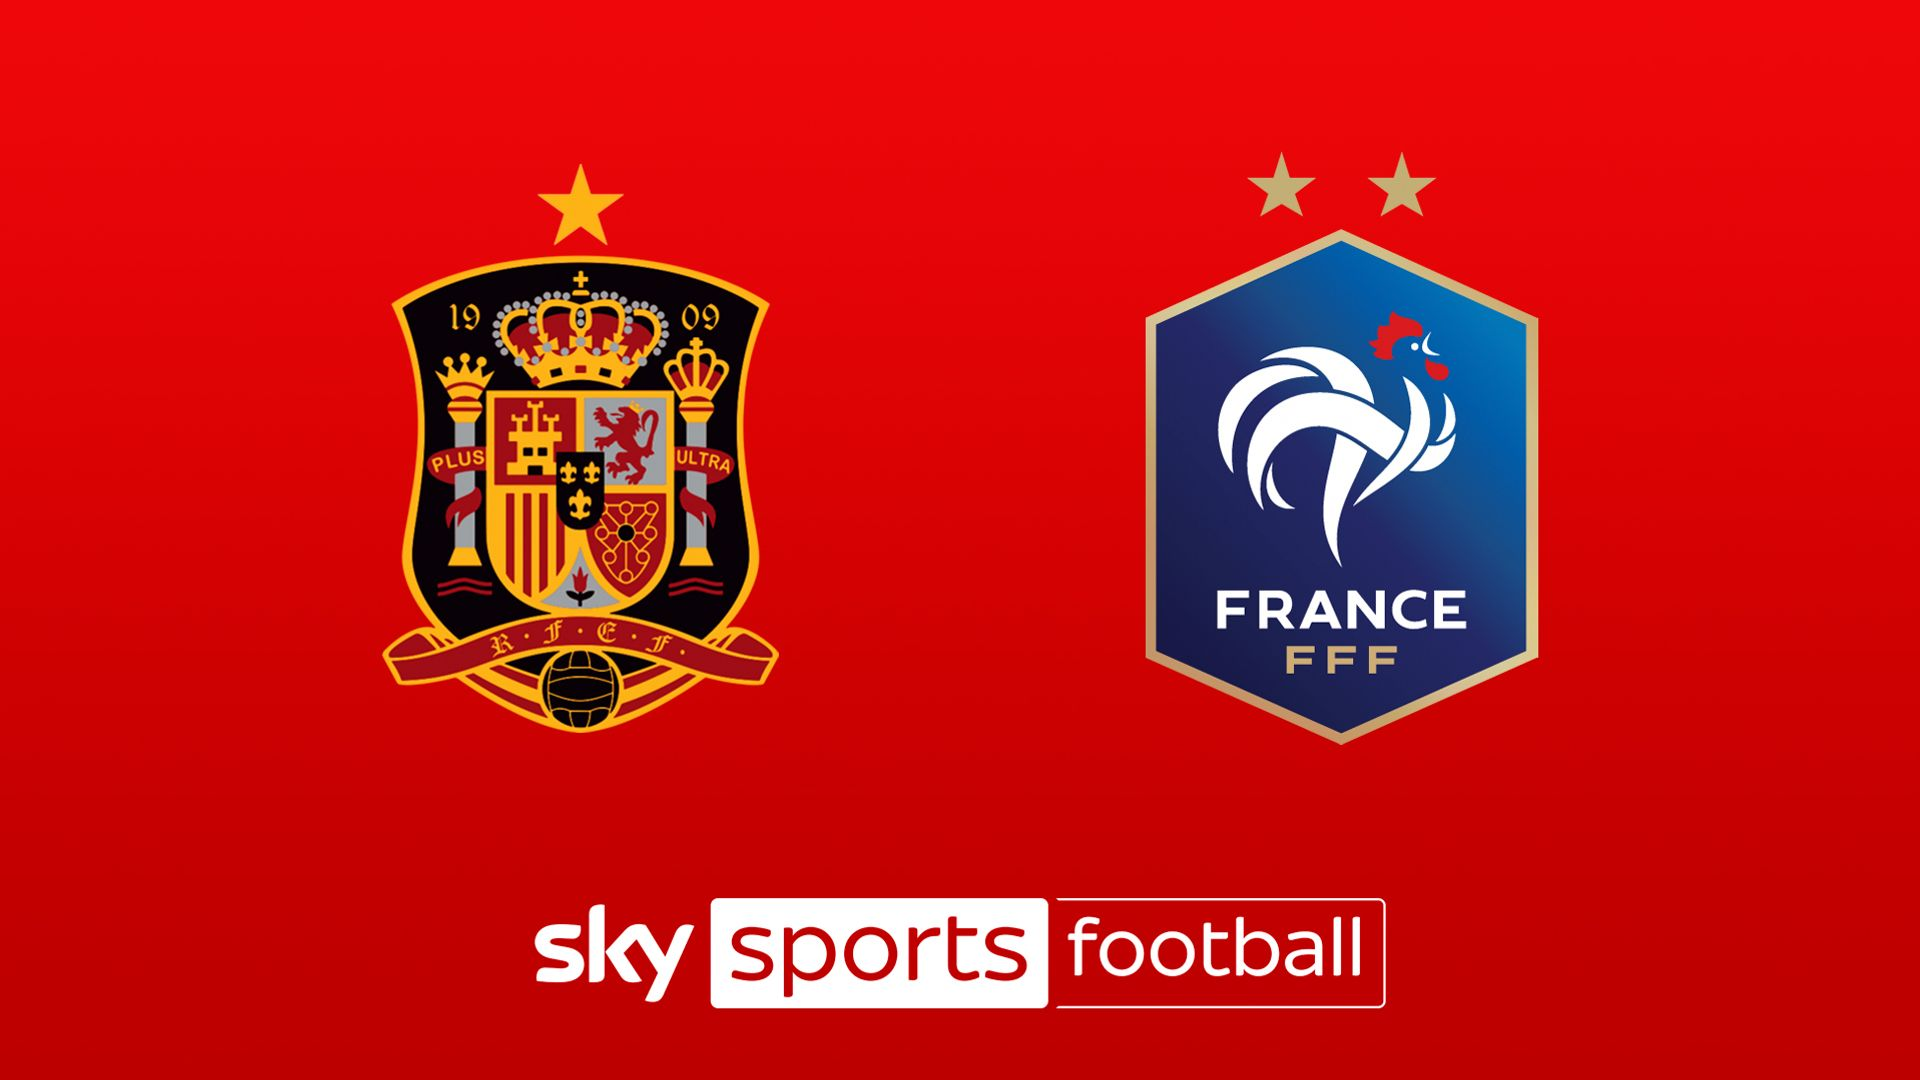 Spain vs France: Who will win Nations League?